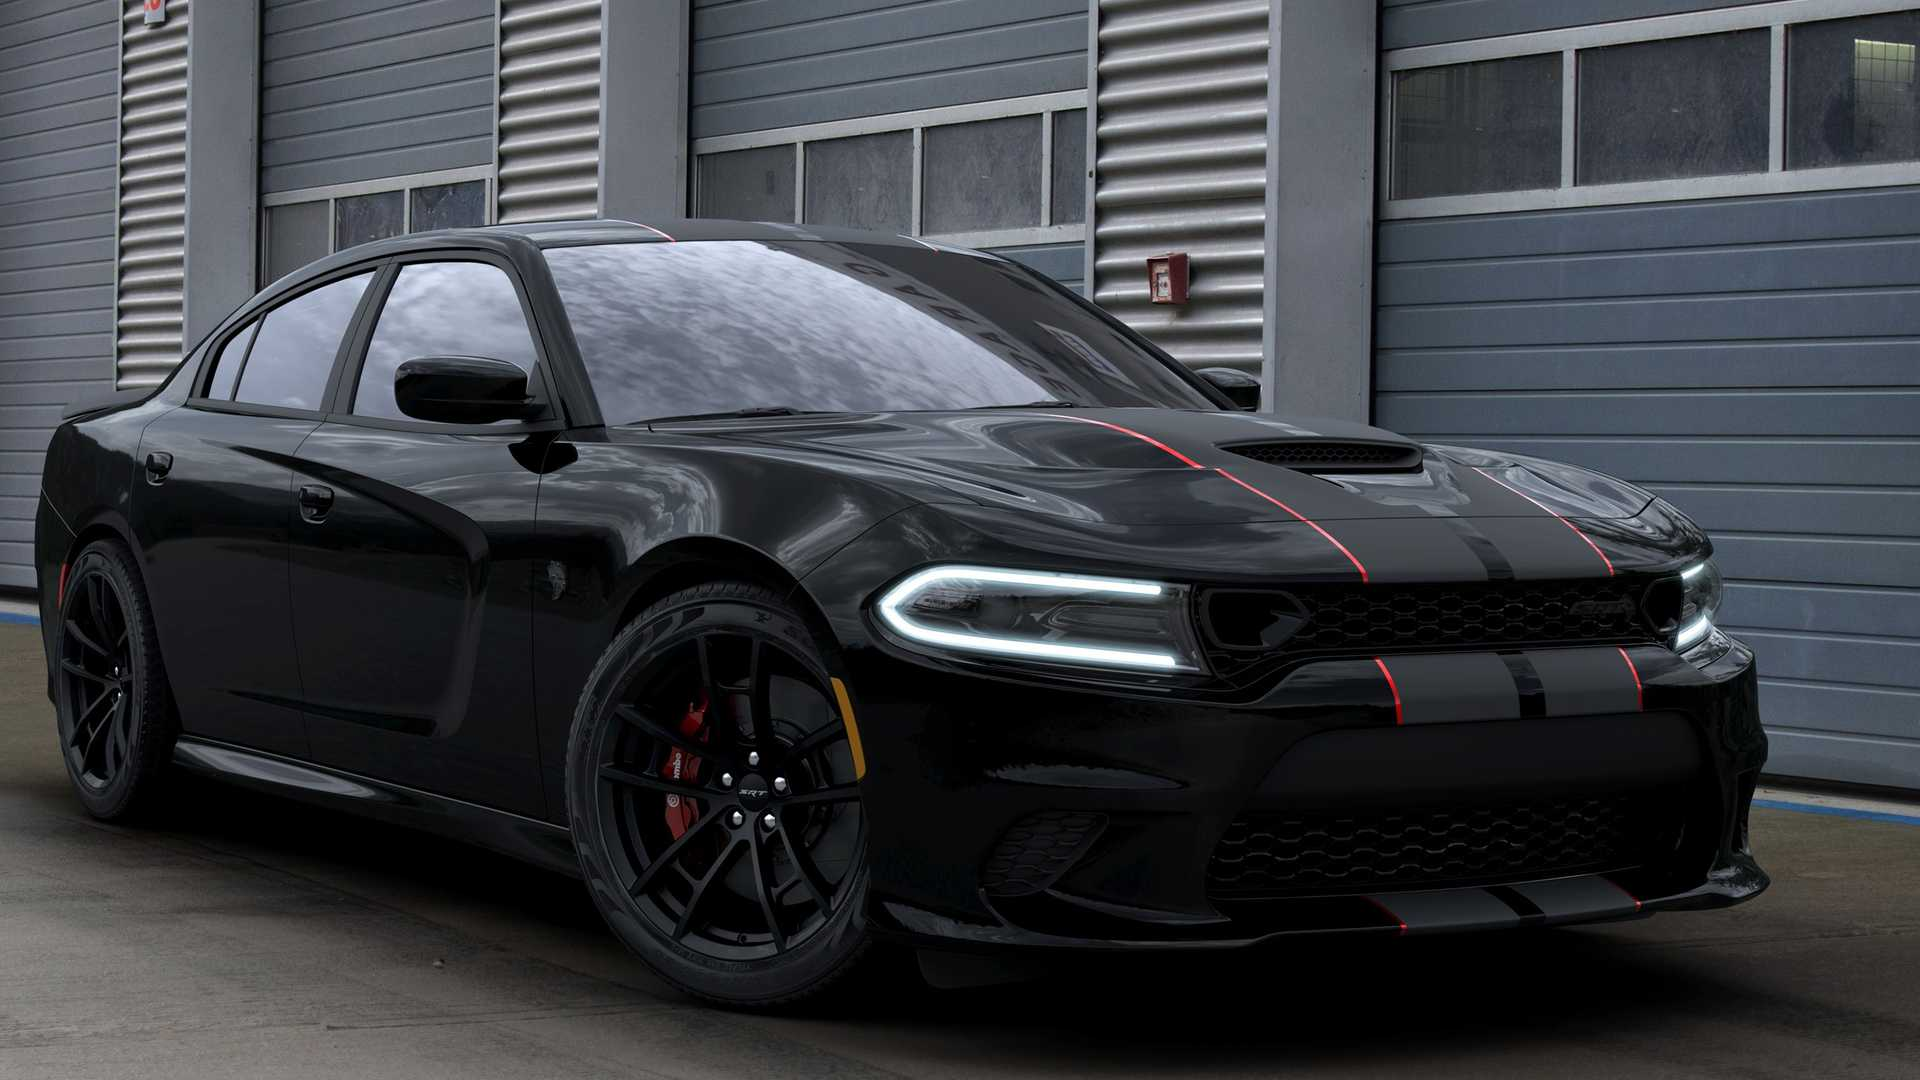 2019 Dodge Charger SRT Hellcat Octane Edition (Color: Pitch Black) Front Three-Quarter Wallpapers (6)